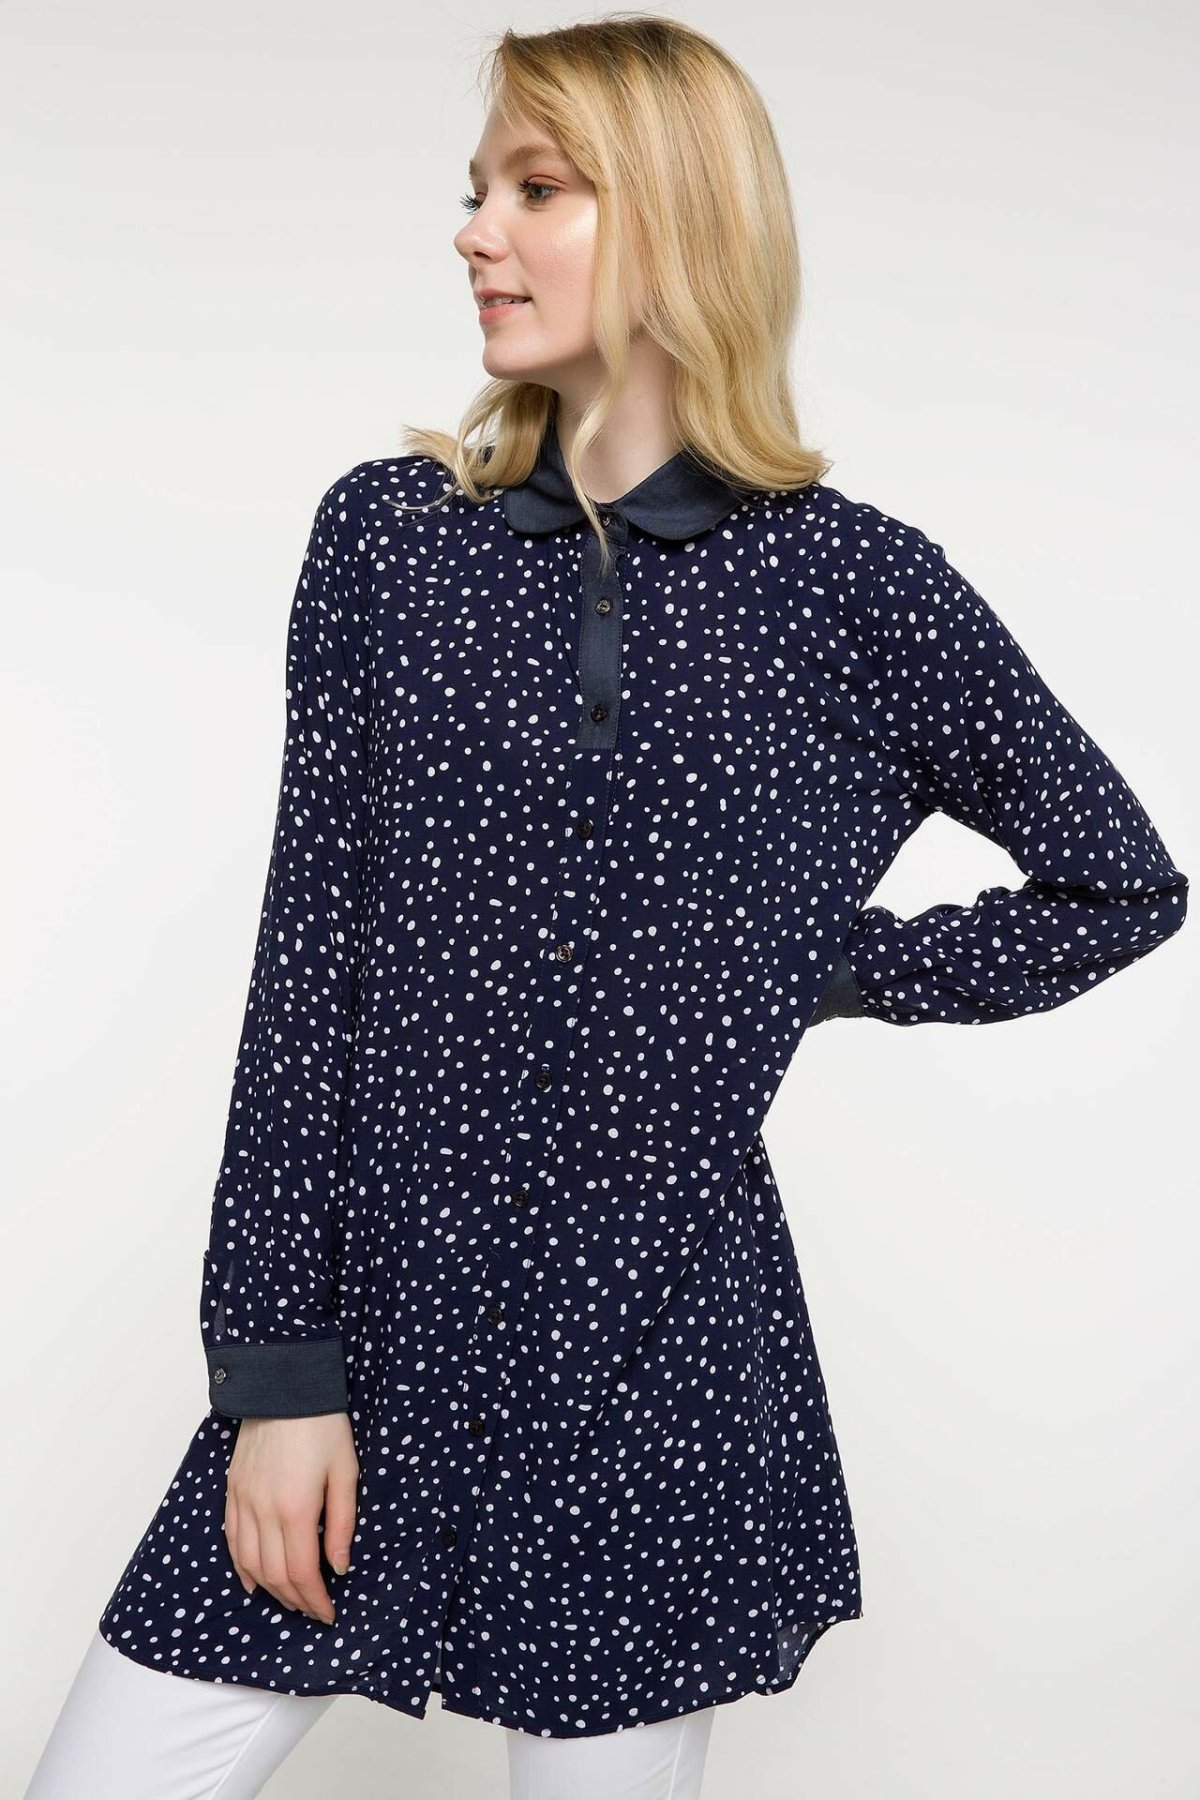 DeFacto Women Summer Navy <font><b>Blue</b></font> Chiffon Blouse Women Casual White <font><b>Polka</b></font> <font><b>Dot</b></font> <font><b>Shirts</b></font> Female Long Sleeve Woven Tunic -I1738AZ18SM image